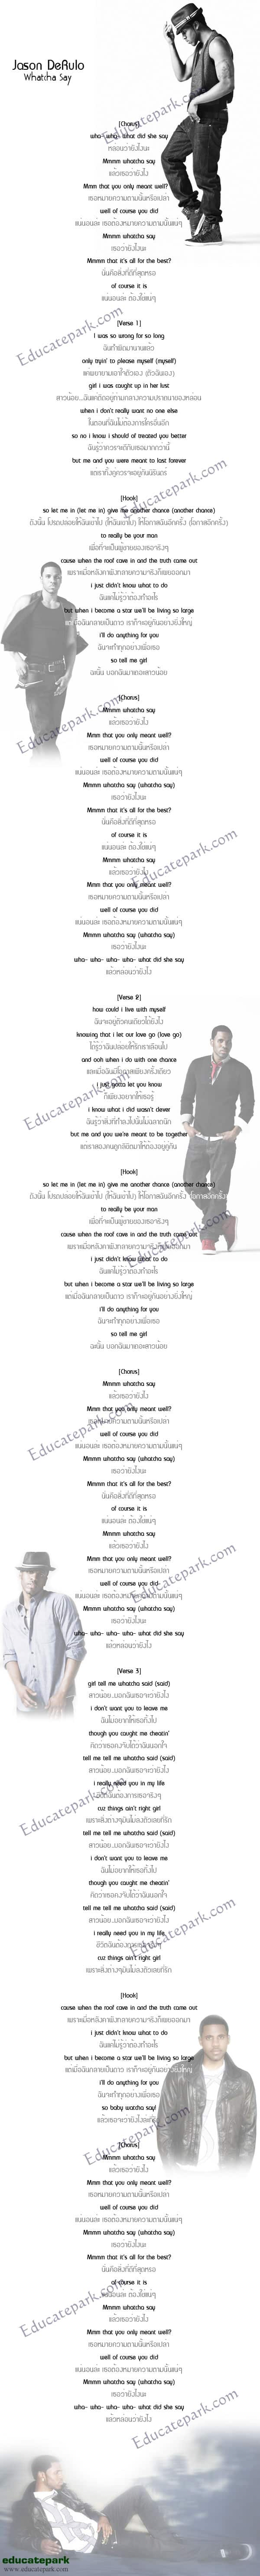 แปลเพลง Whatcha Say - Jason Derulo